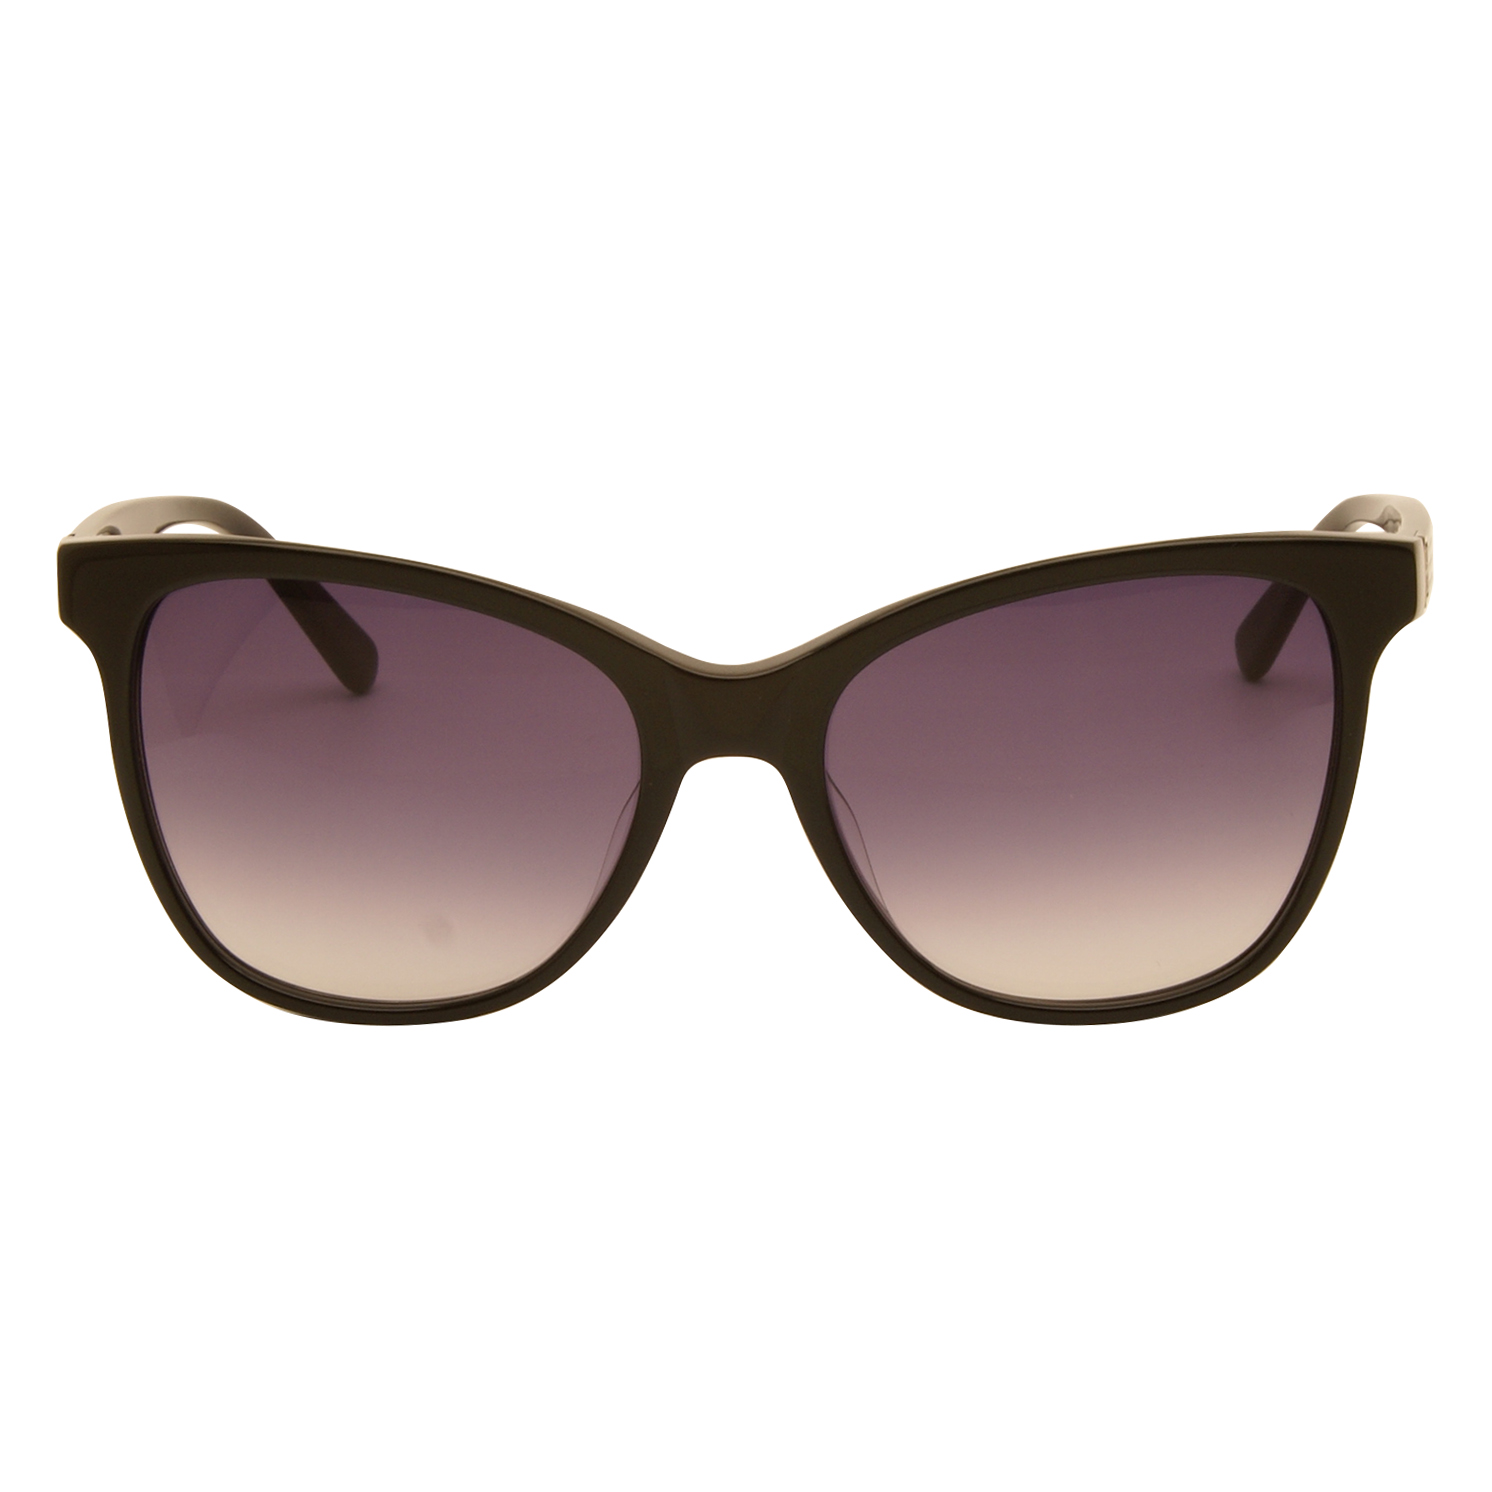 Love Moschino – Shiny Black Classic Style Sunglasses with Case